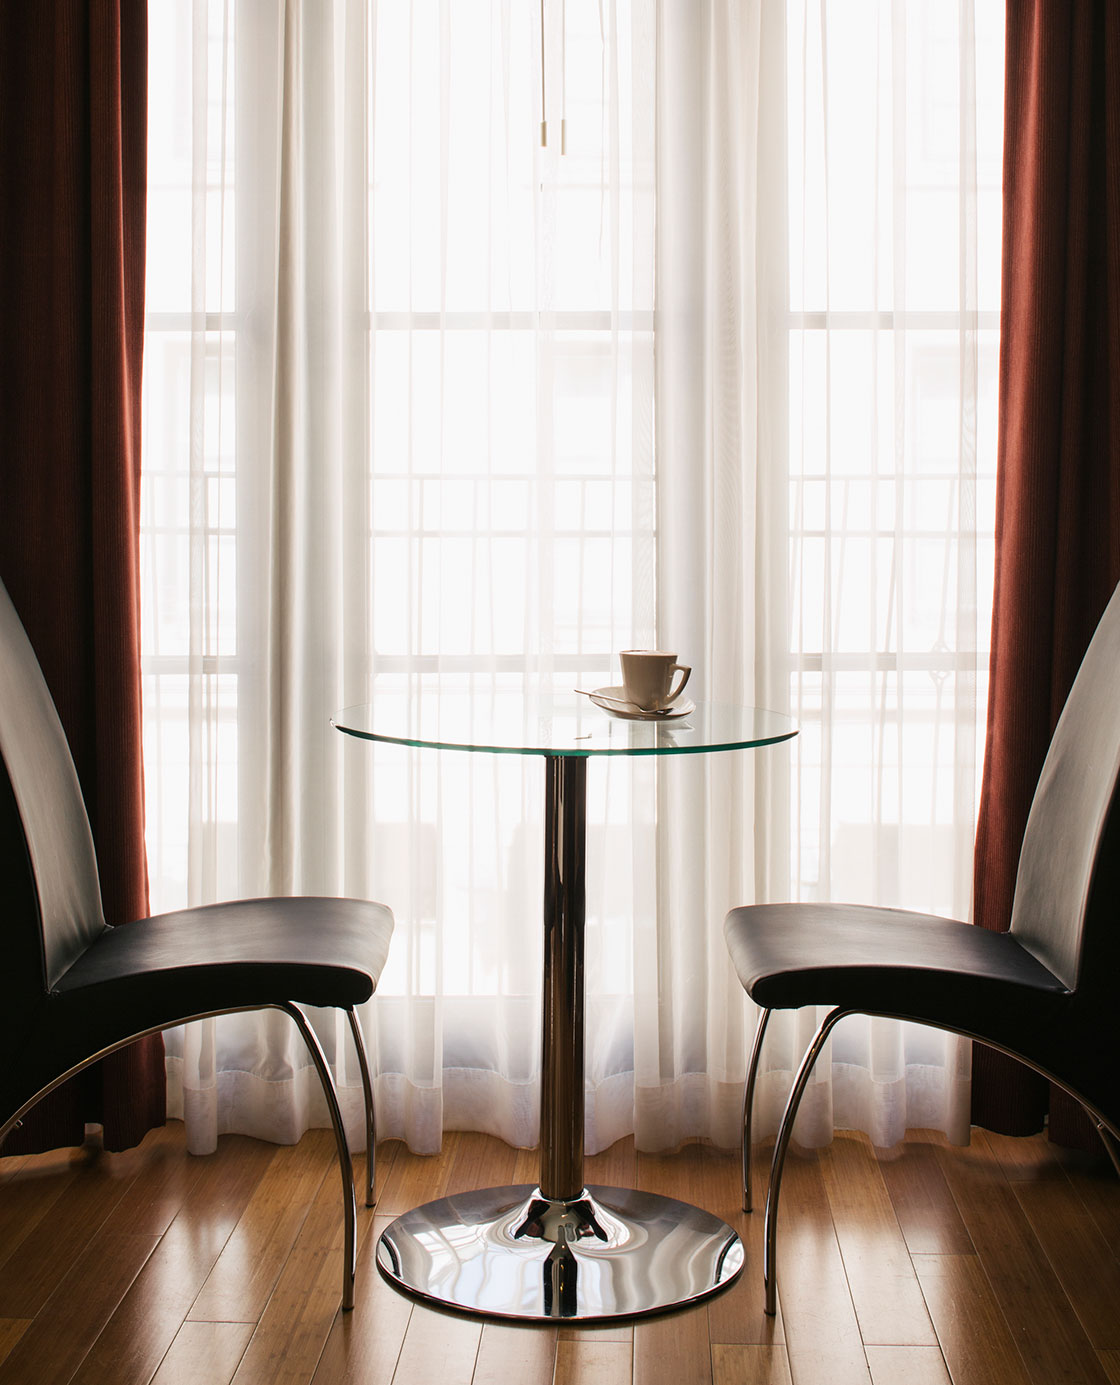 Two chairs in front of a glass table with a coffee on the table.